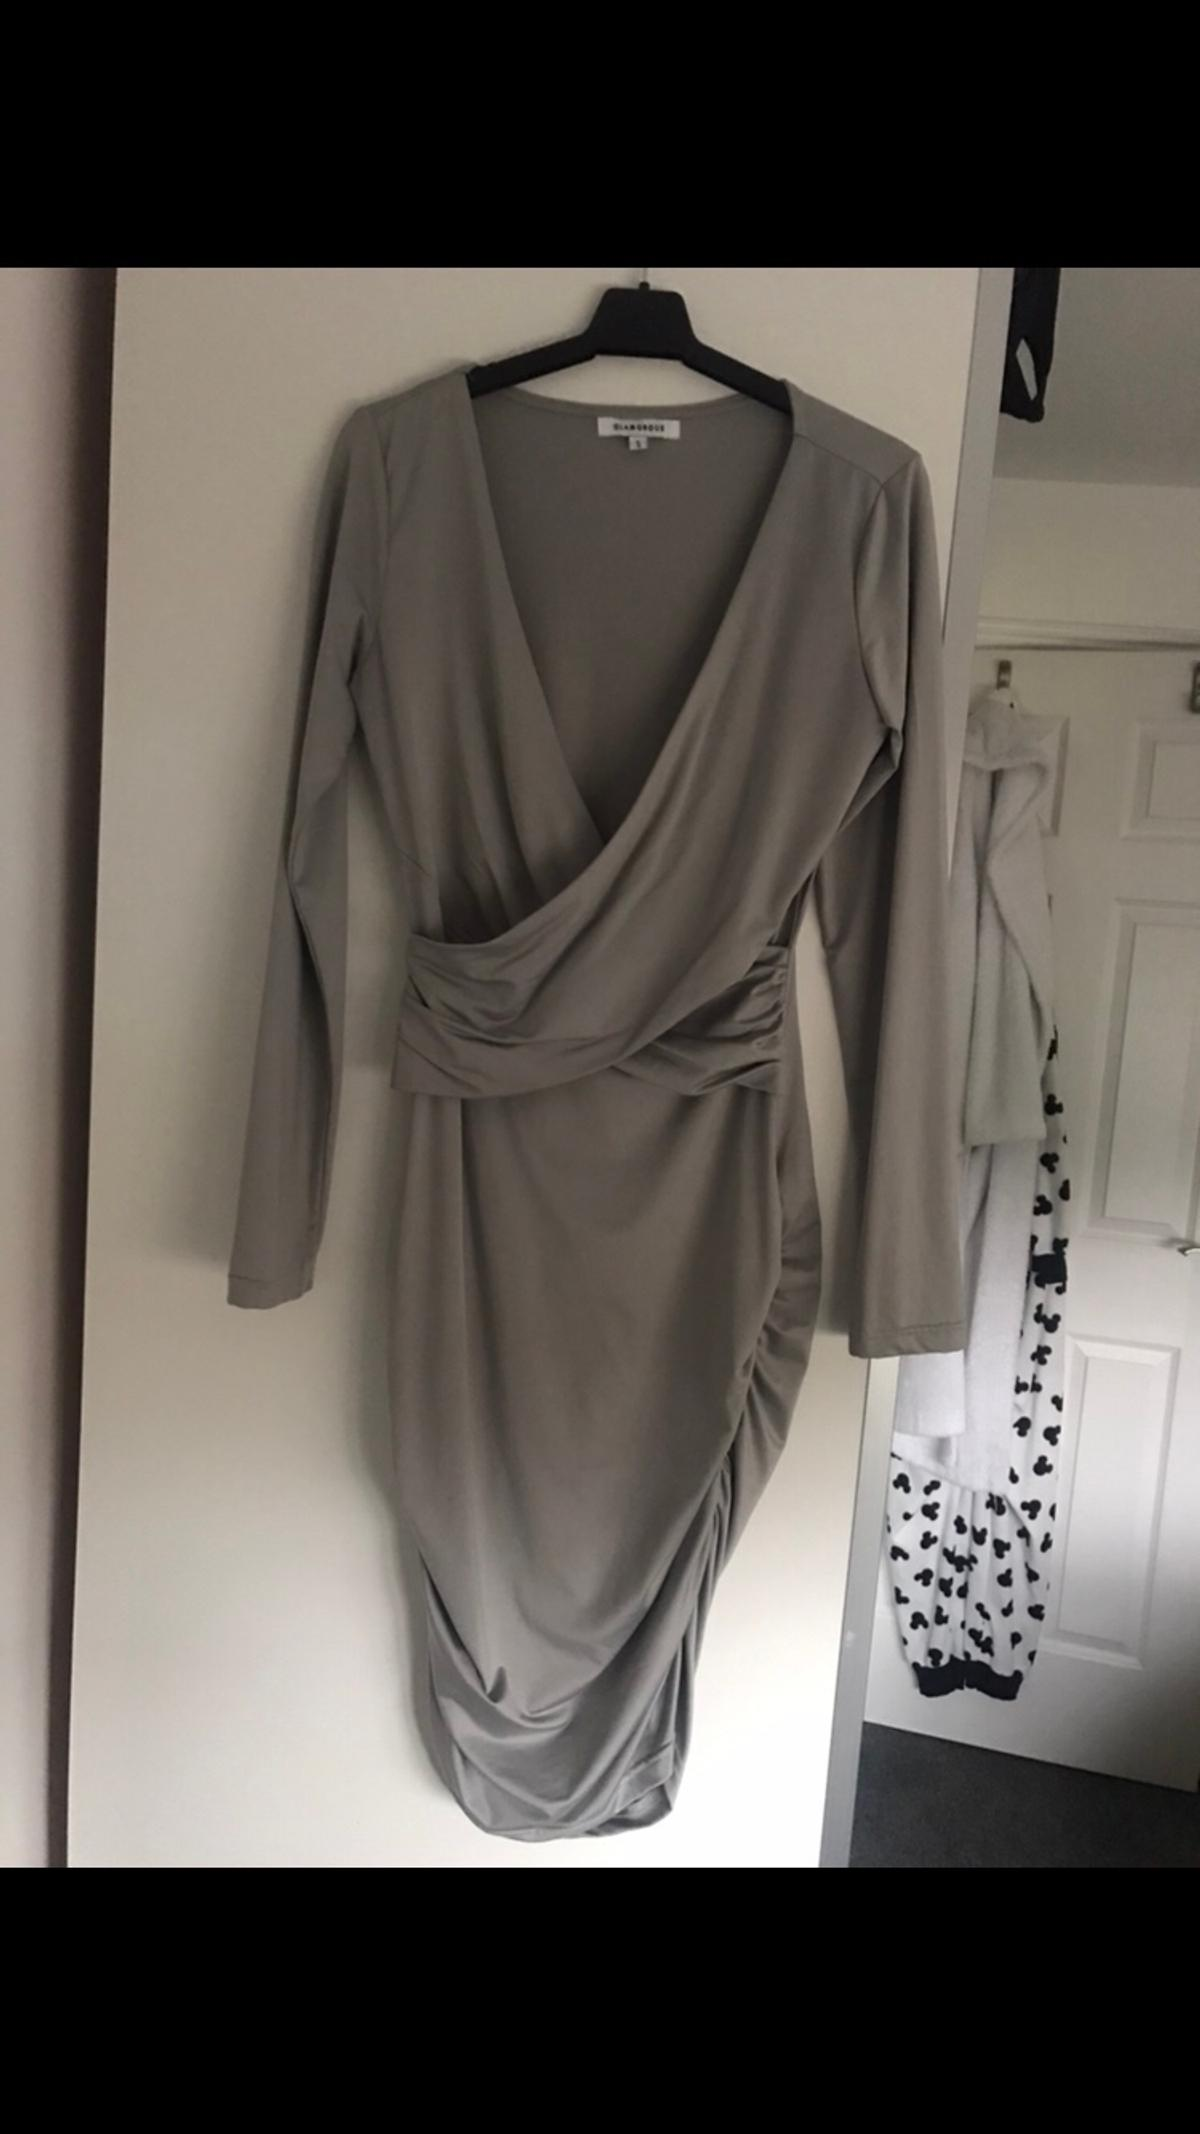 Silver mid length dress. Size small. Good condition. Worn once.